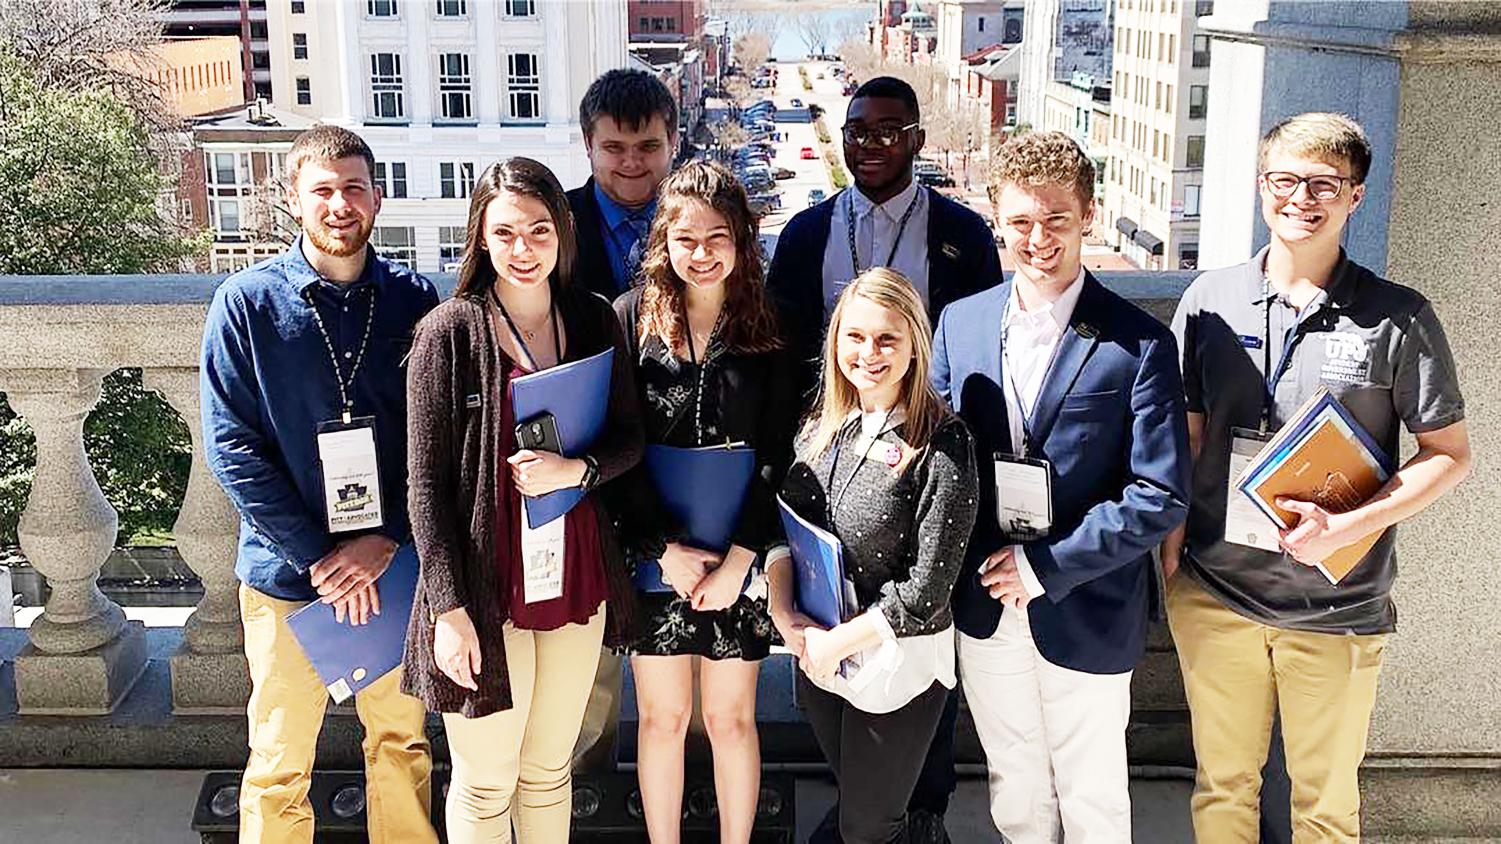 Several Pitt-Johnstown students, staff members and alumni toured the Pennsylvania State Capital building March 26 as part of the annual Pitt Day in Harrisburg event. Pictured: student government members stand on a balcony outside of Lt. Gov. John Fetterman's office.